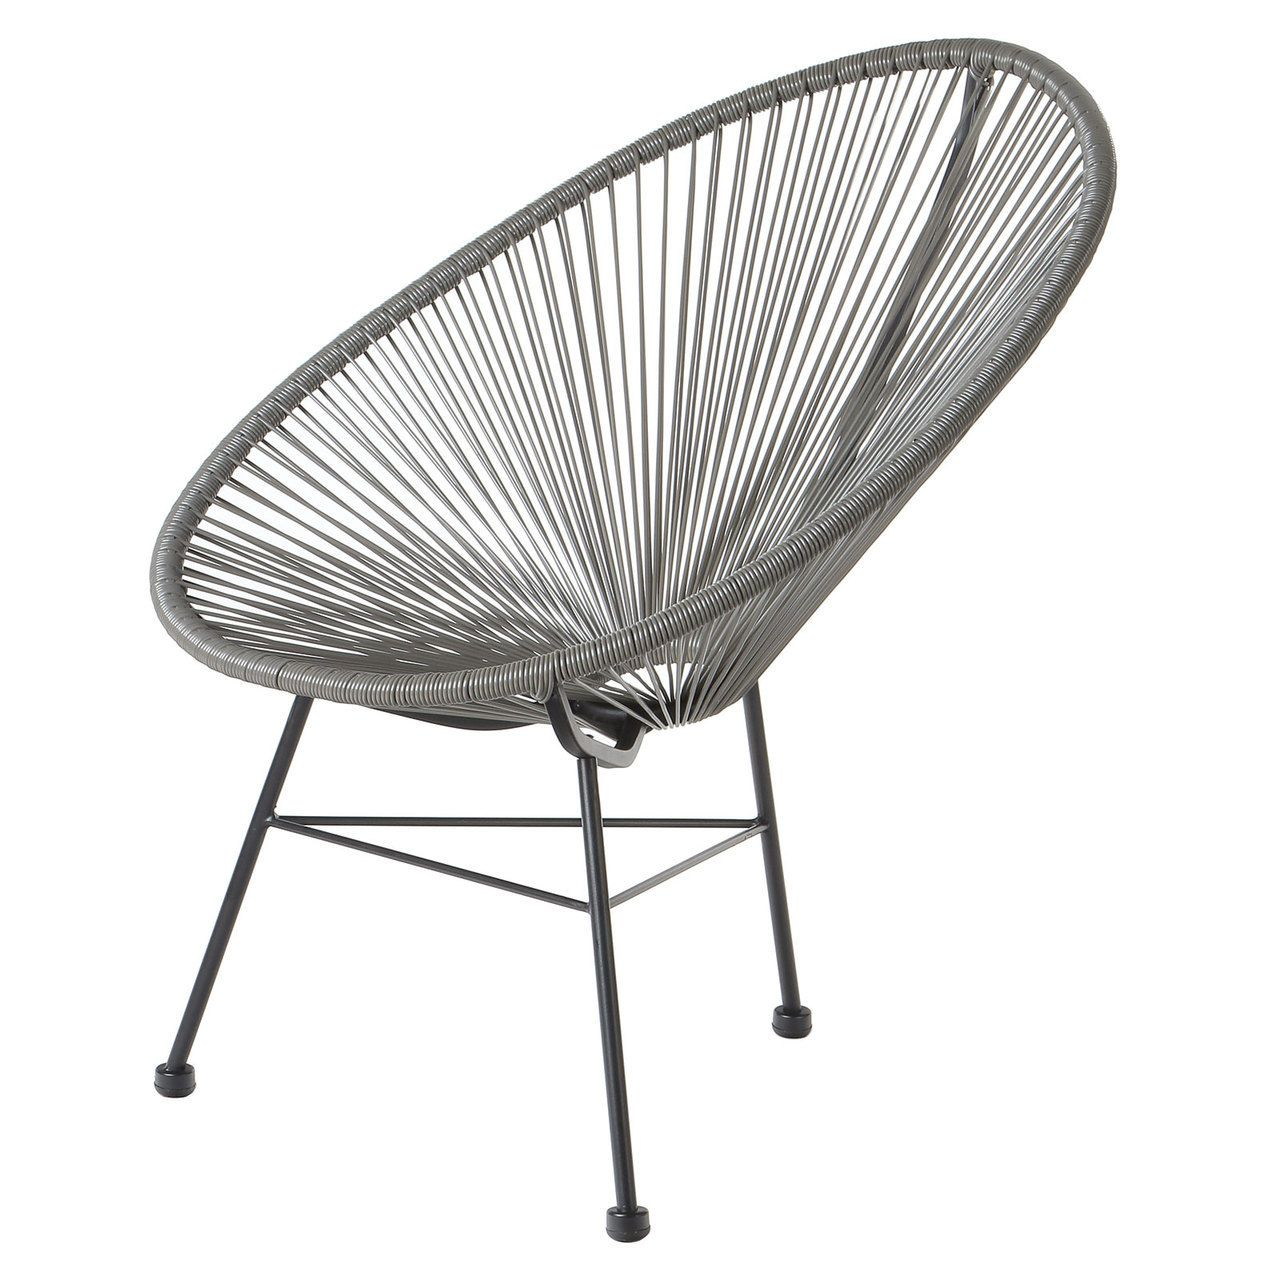 acapulco lounge chair best gaming chairs australia grey wire basket patio